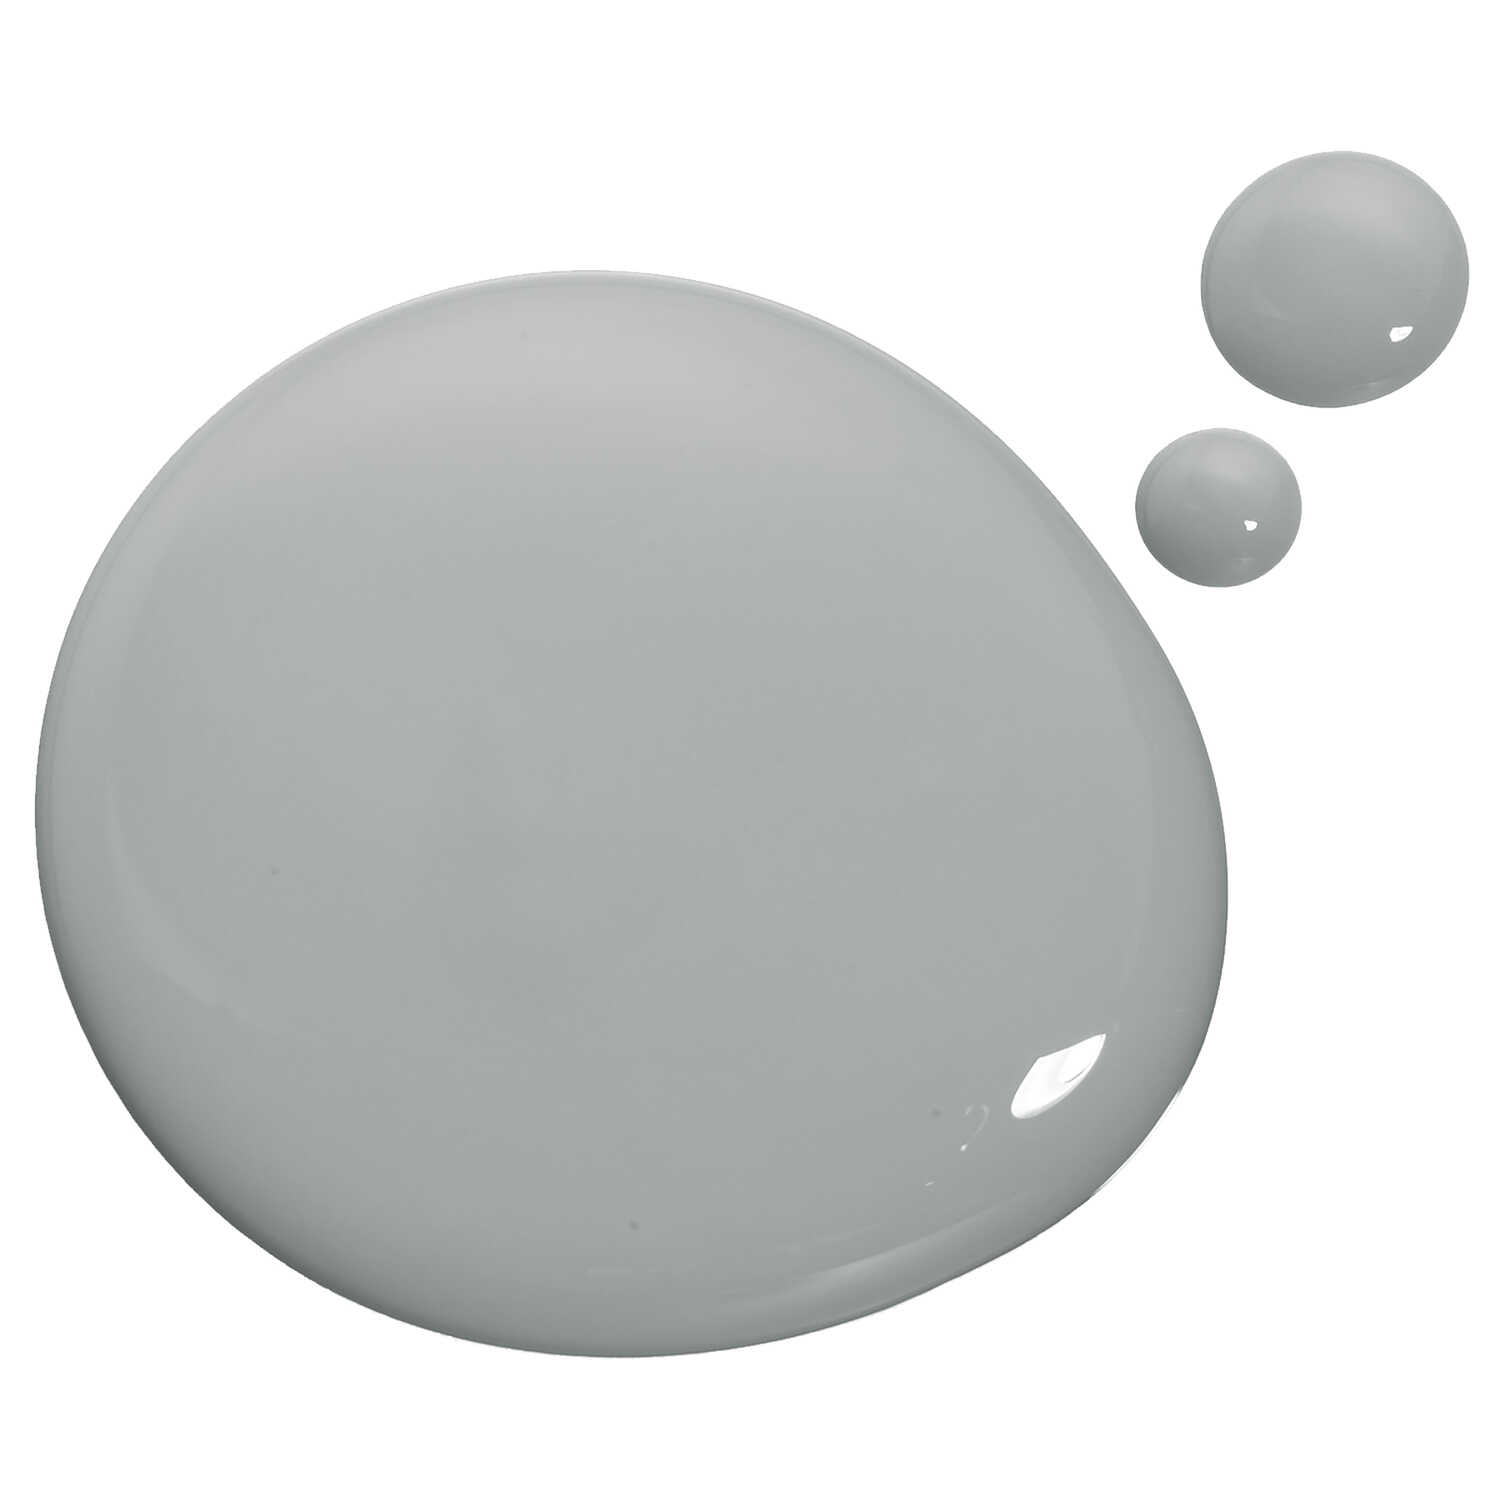 BEYOND PAINT  Matte  Soft Gray  Water-Based  Acrylic  All-In-One Paint  Indoor and Outdoor  1 qt.